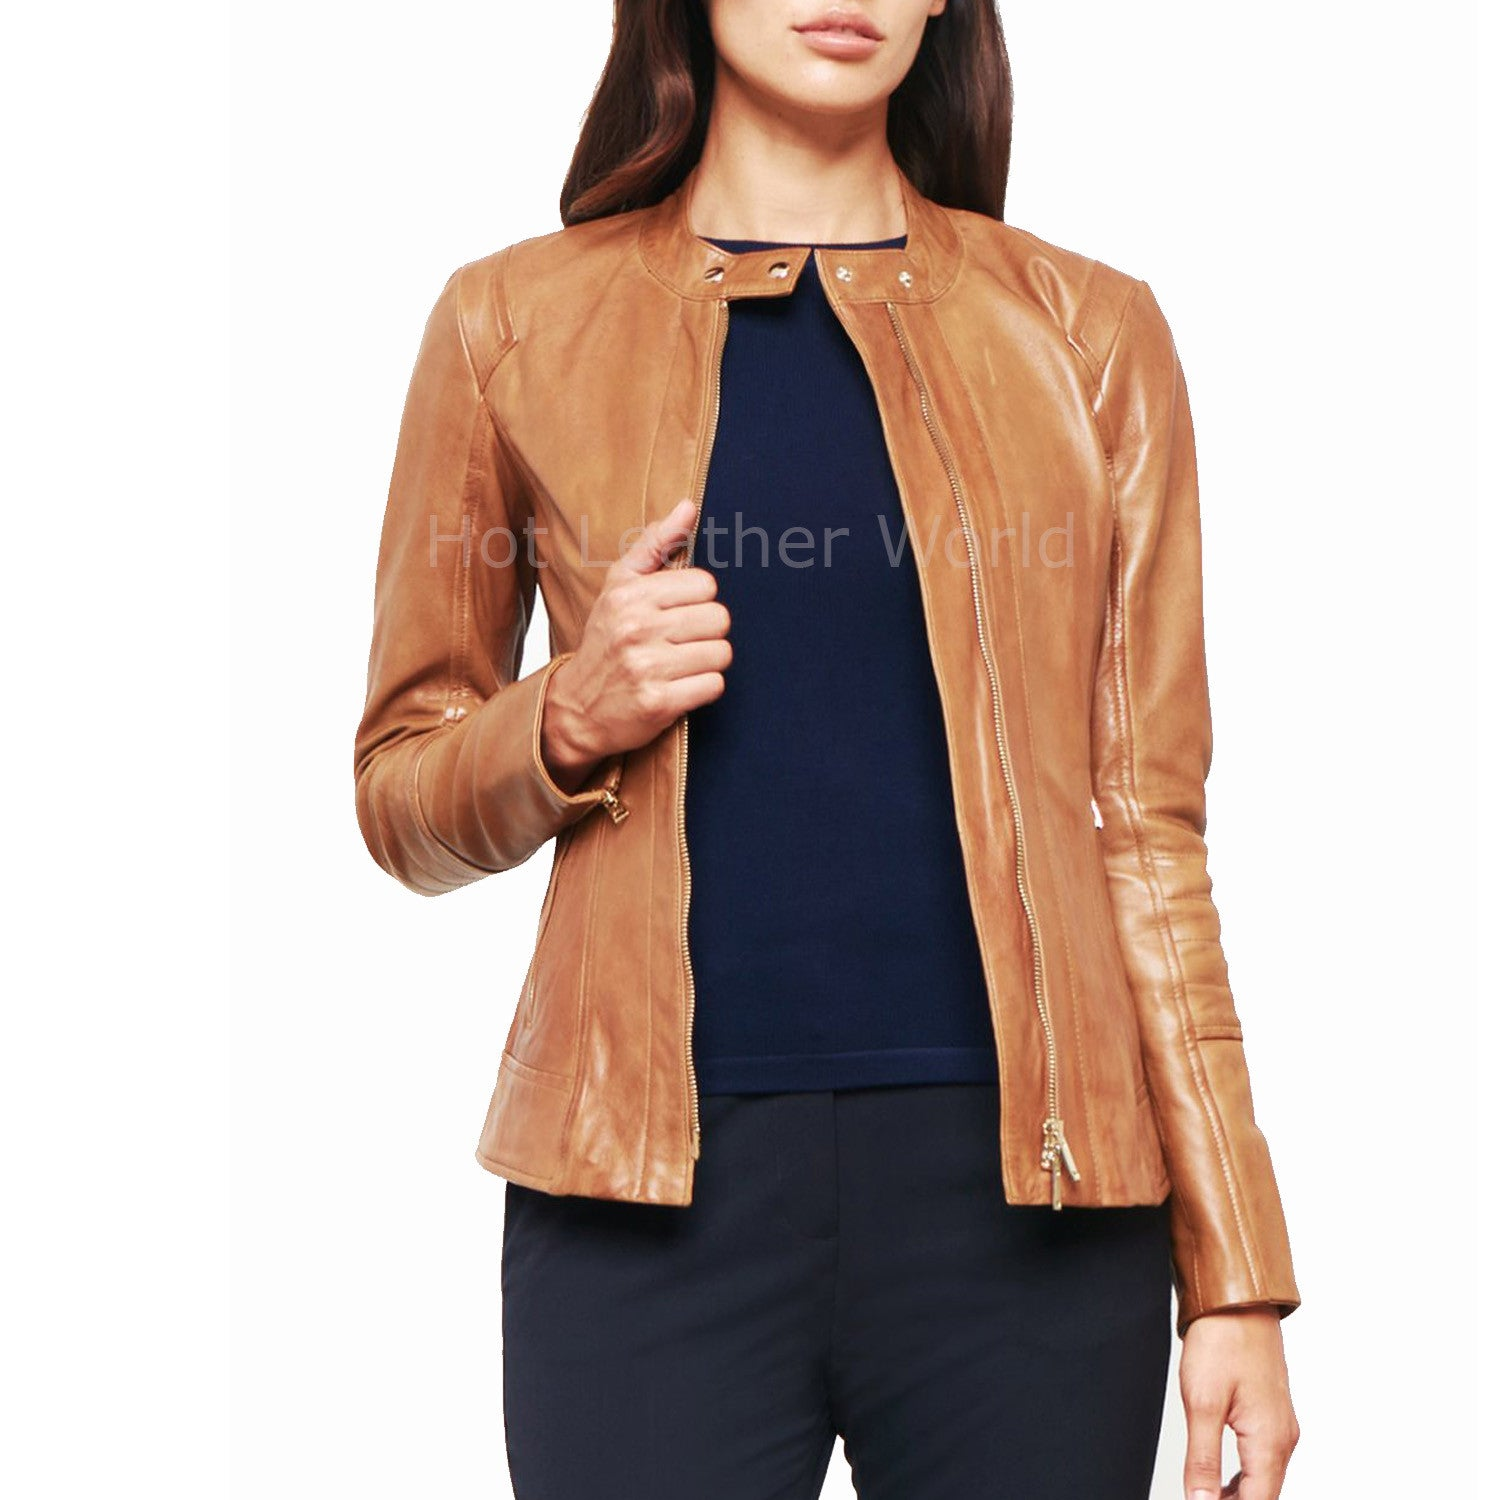 Tab Neck Women Leather Biker Jacket -  HOTLEATHERWORLD